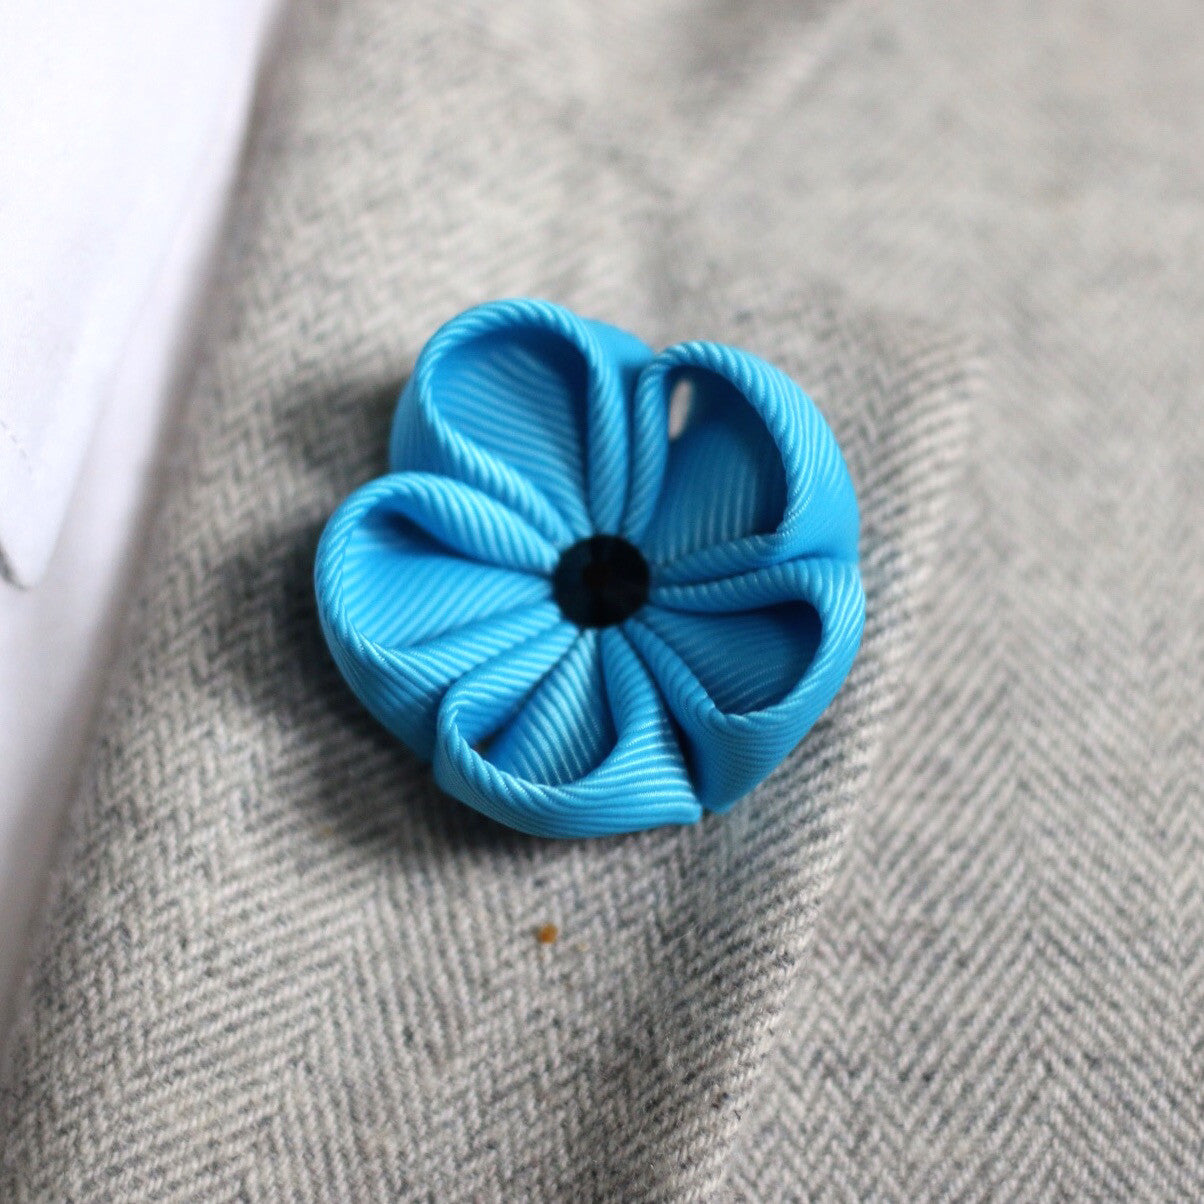 Azure Blue Silk Ribbon Lapel Flower